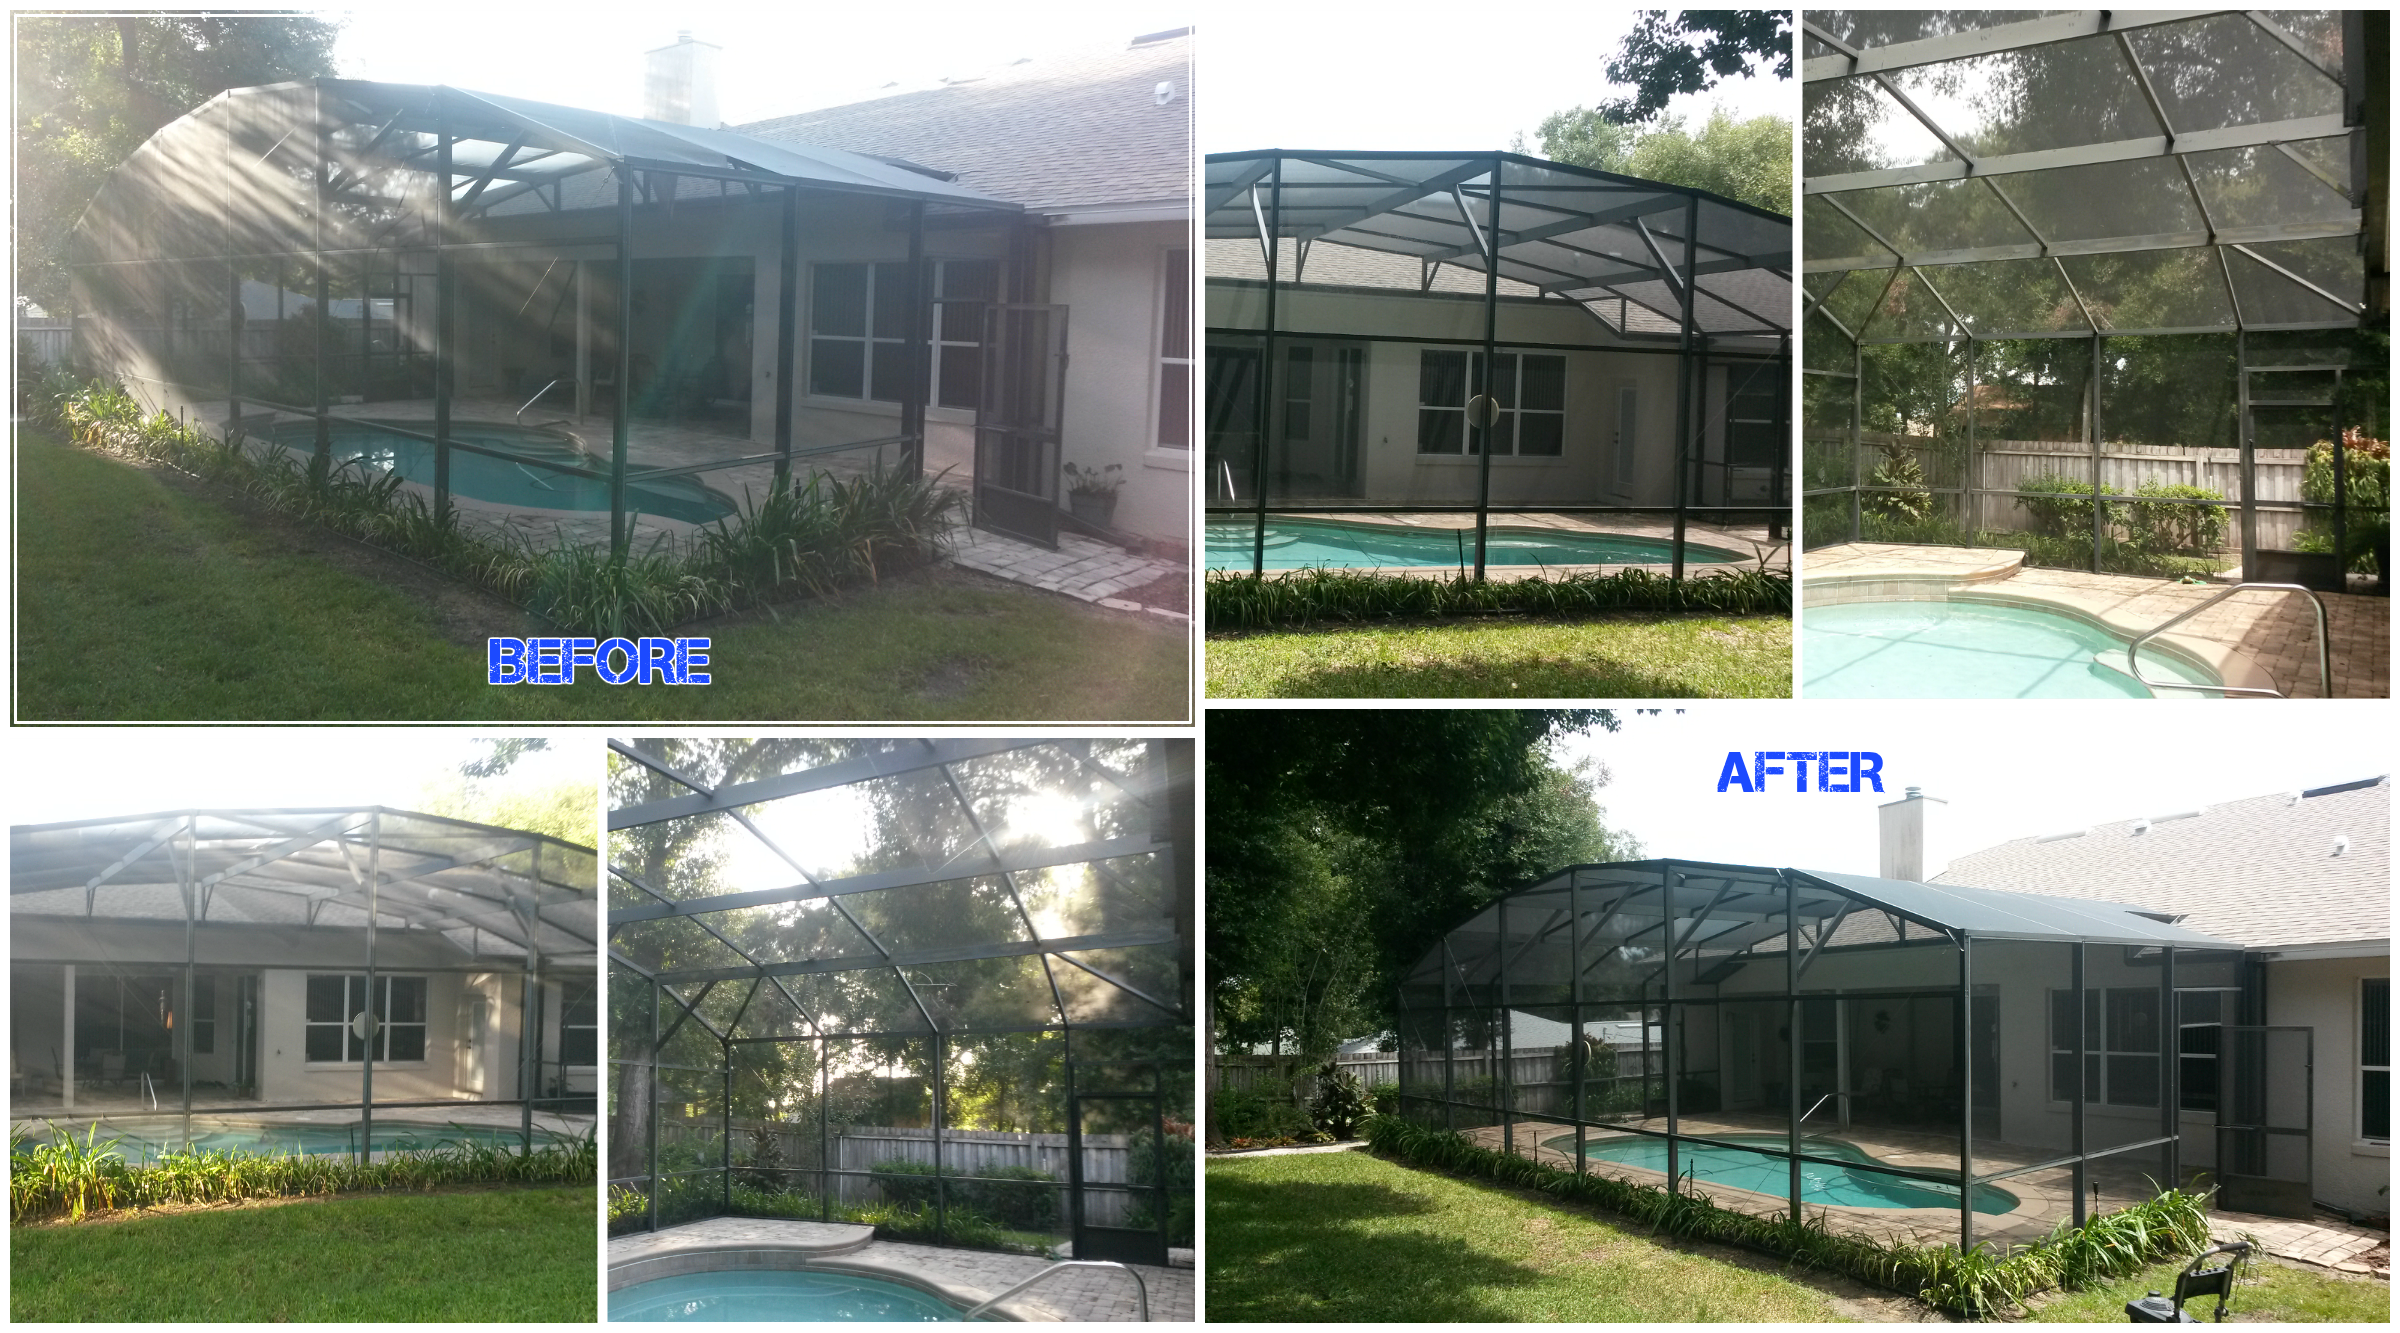 Pool Re-Screen and Pressure Washing